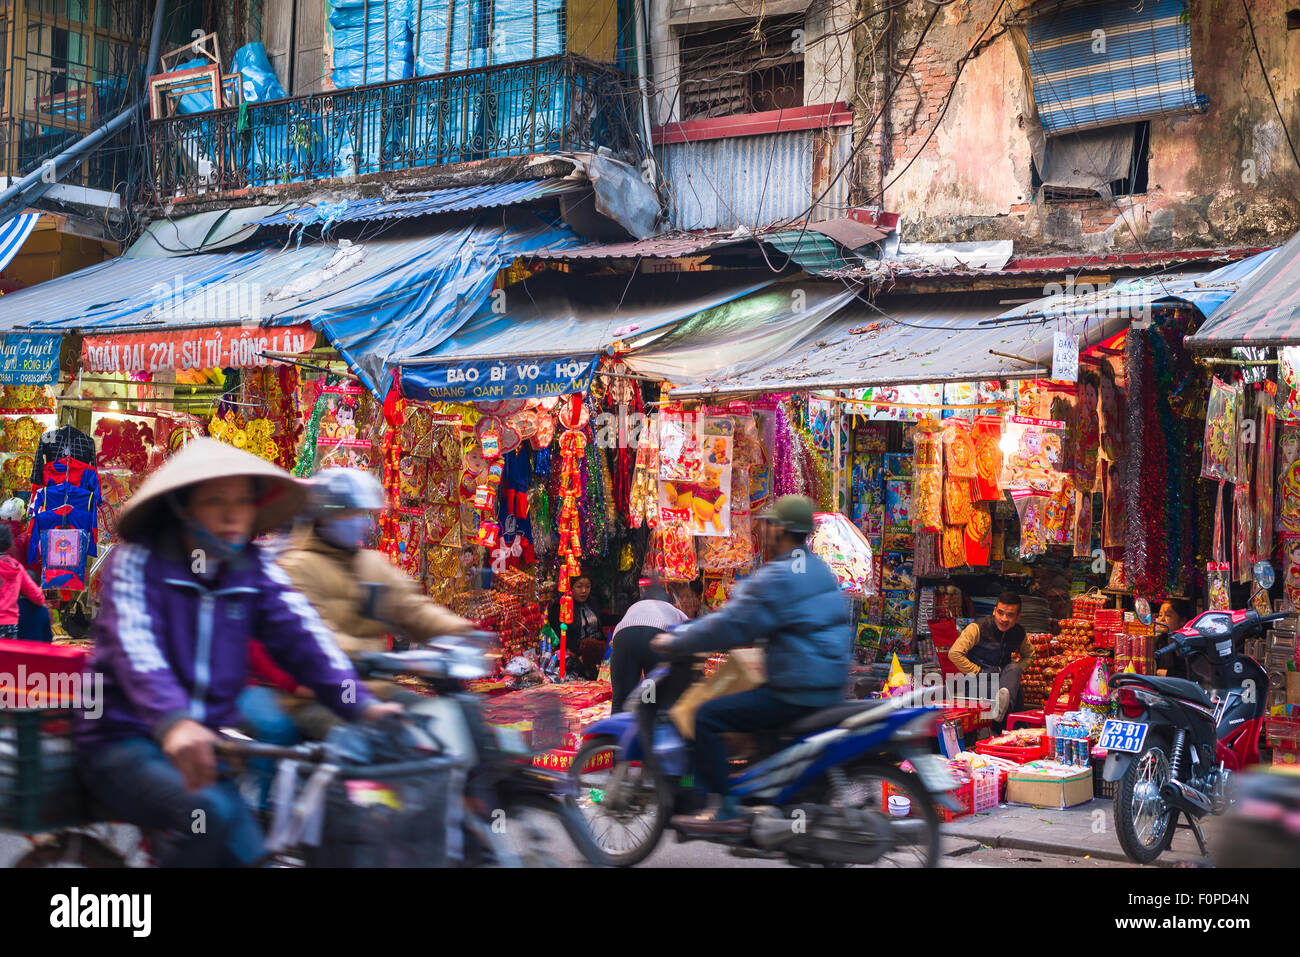 Vietnam street scene, view of traffic in a busy street in the historic Old Quarter of Hanoi, Vietnam. - Stock Image